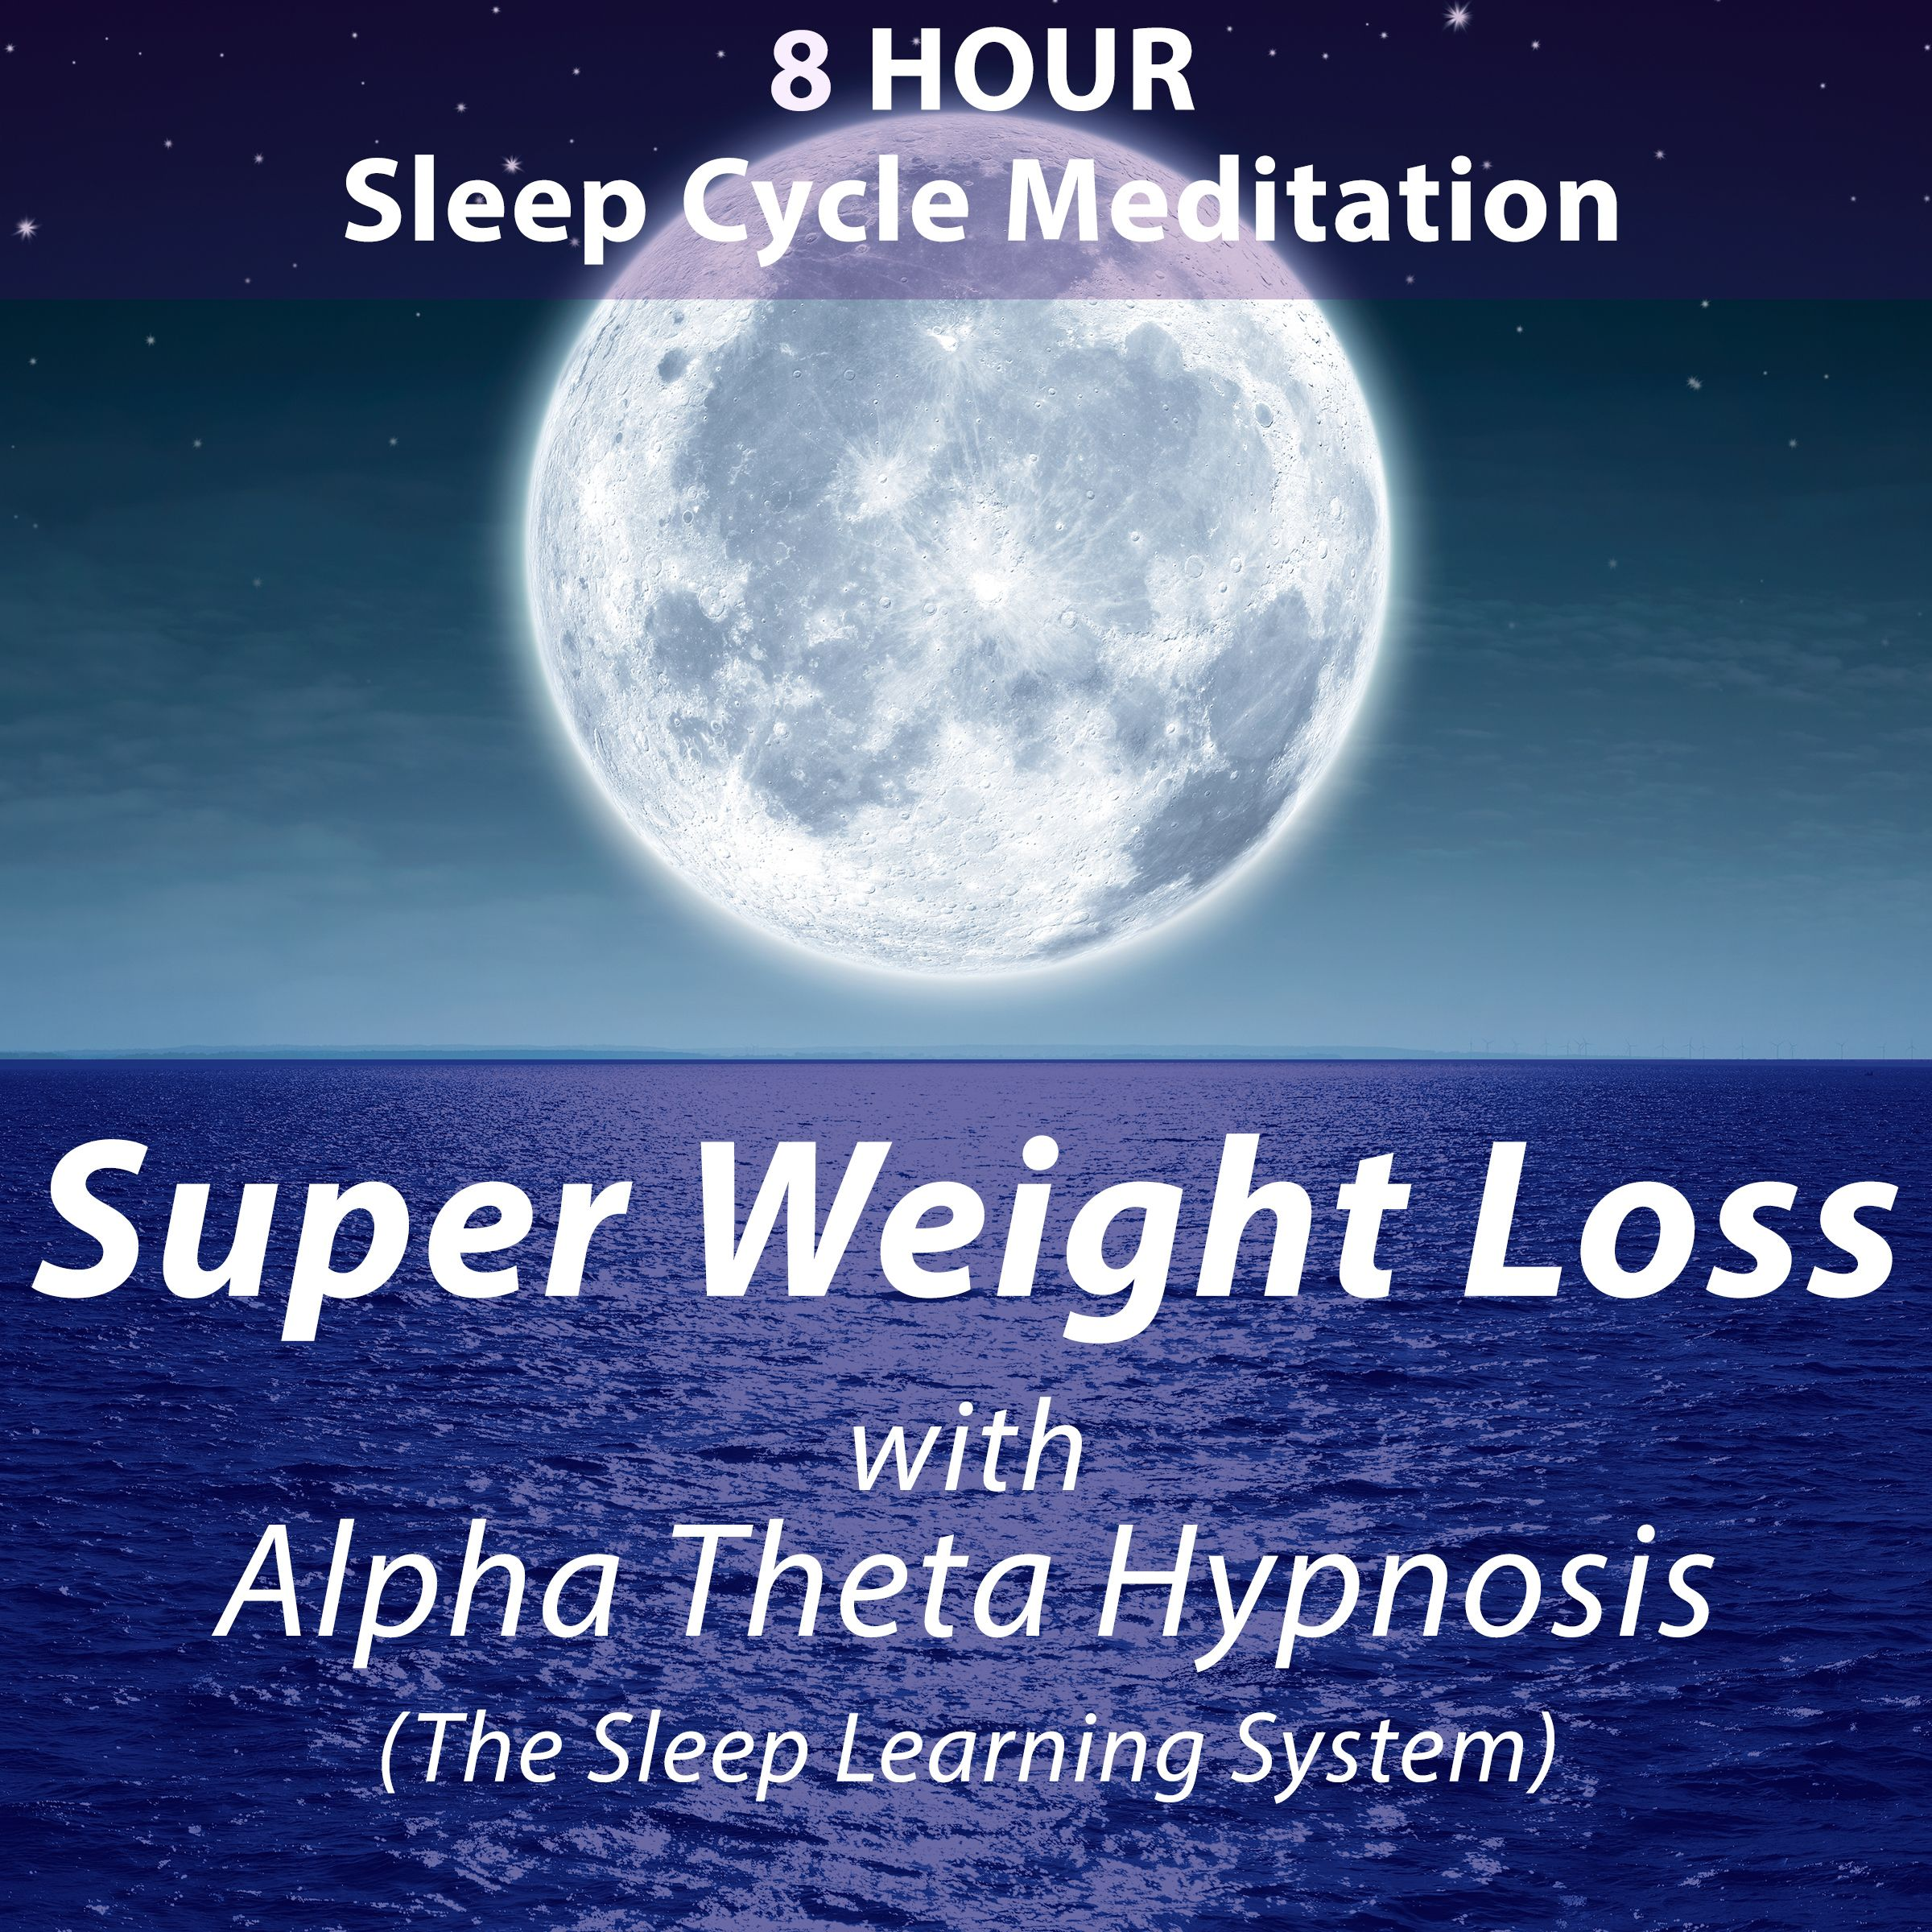 8 Hour Sleep Cycle Meditation: Super Weight Loss with Alpha Theta